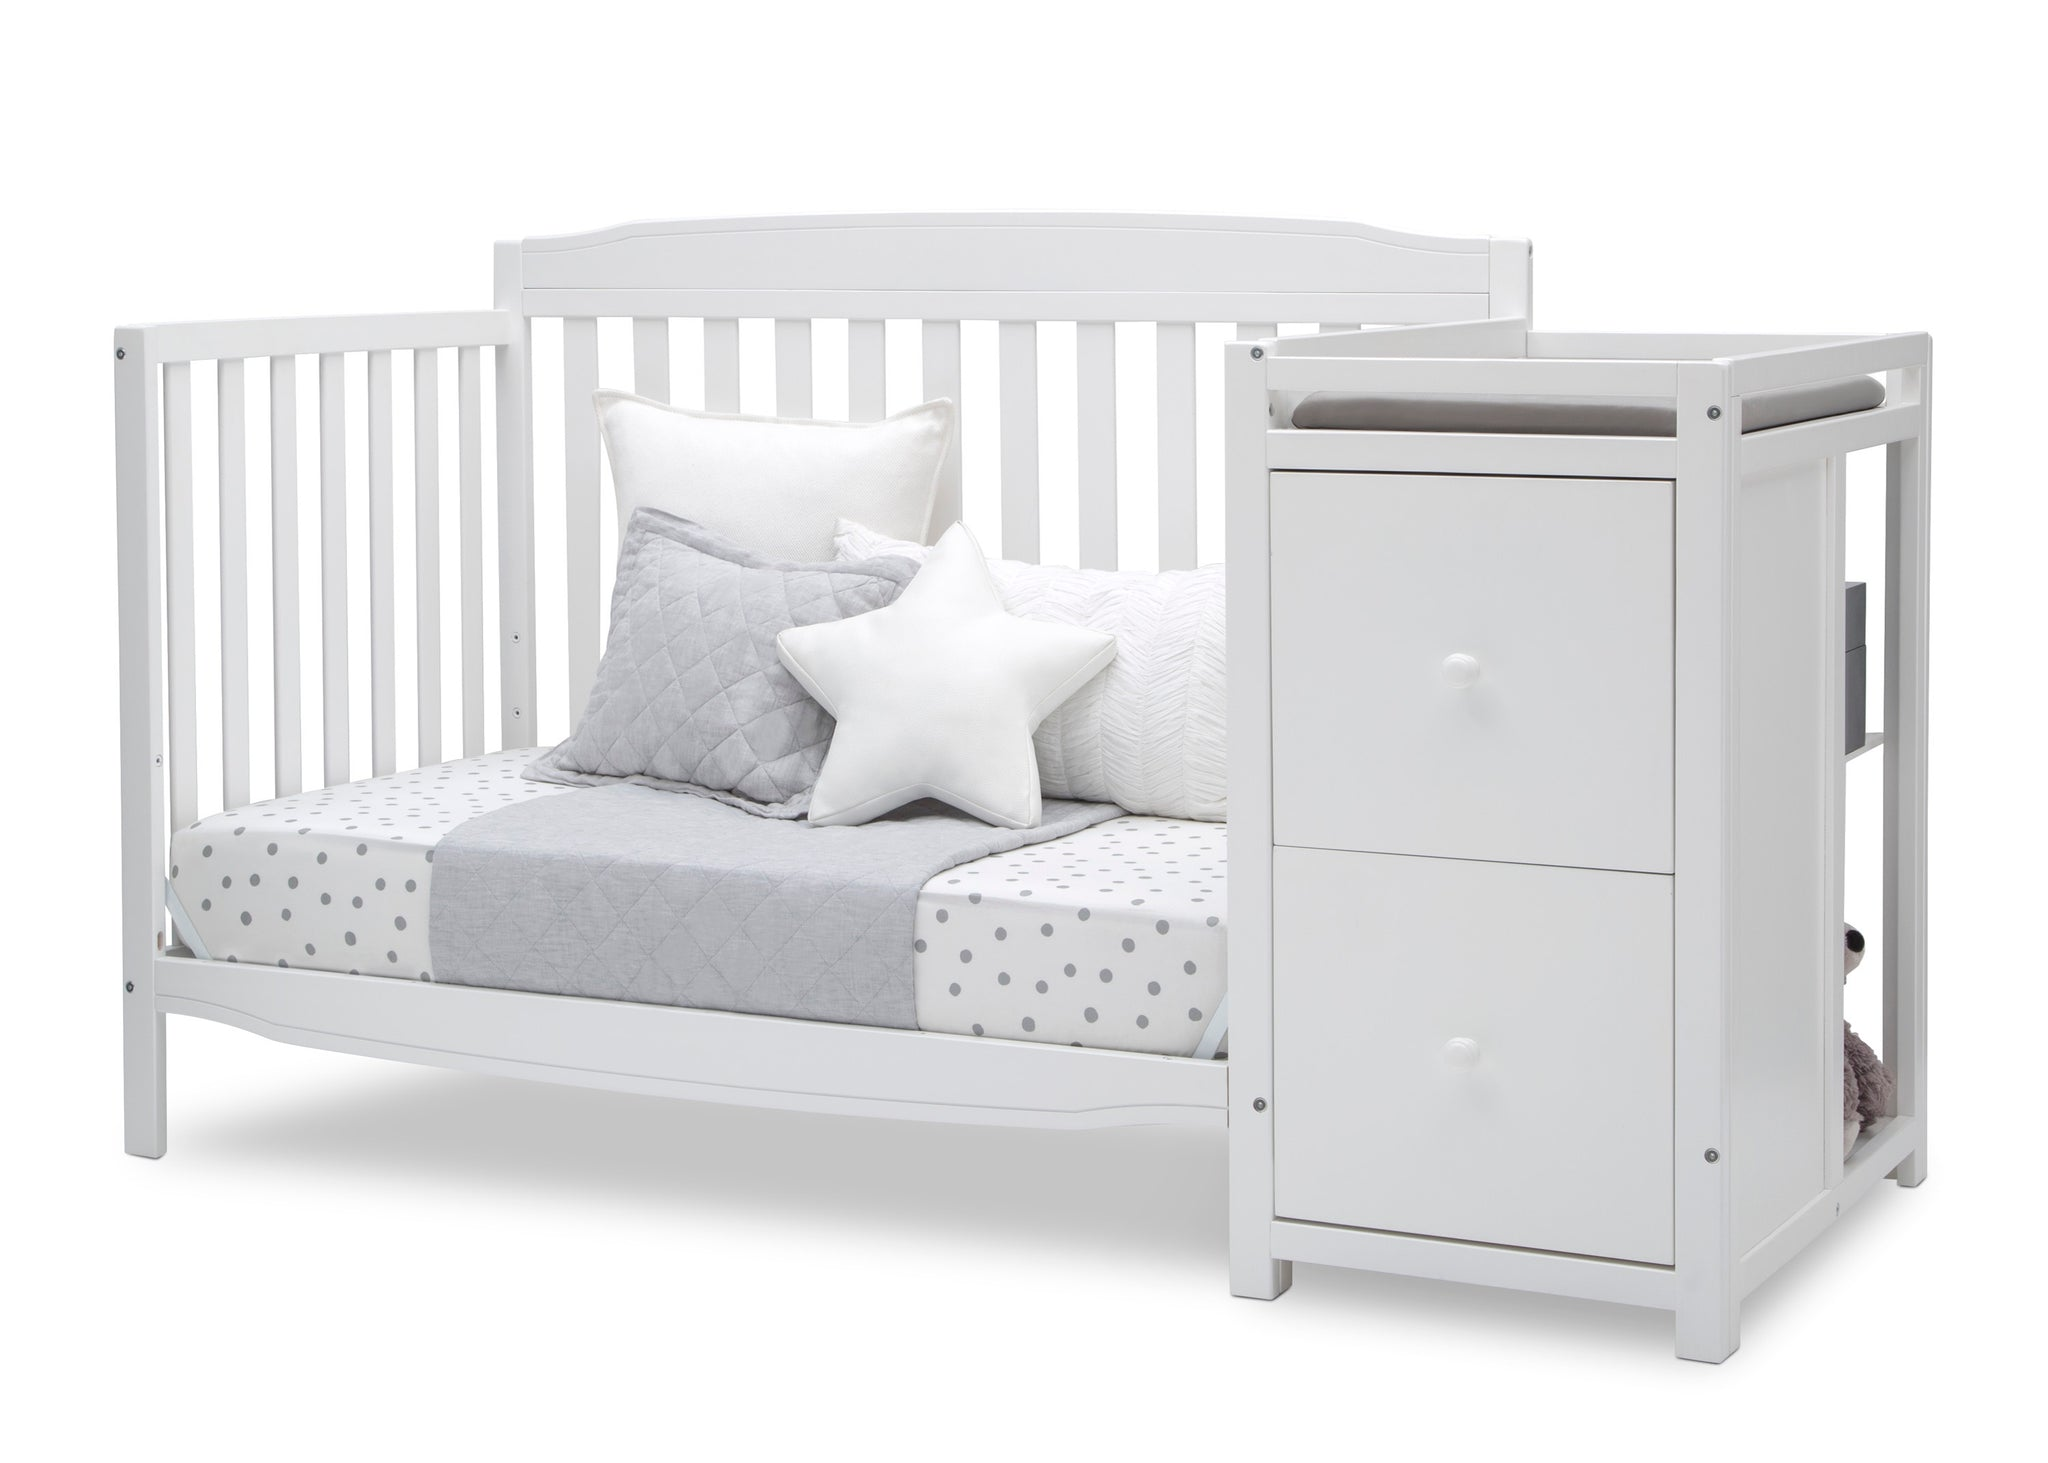 Delta Children Bianca White (130) Mason Convertible 6-in-1 Crib and Changer, Left Day Bed Silo View